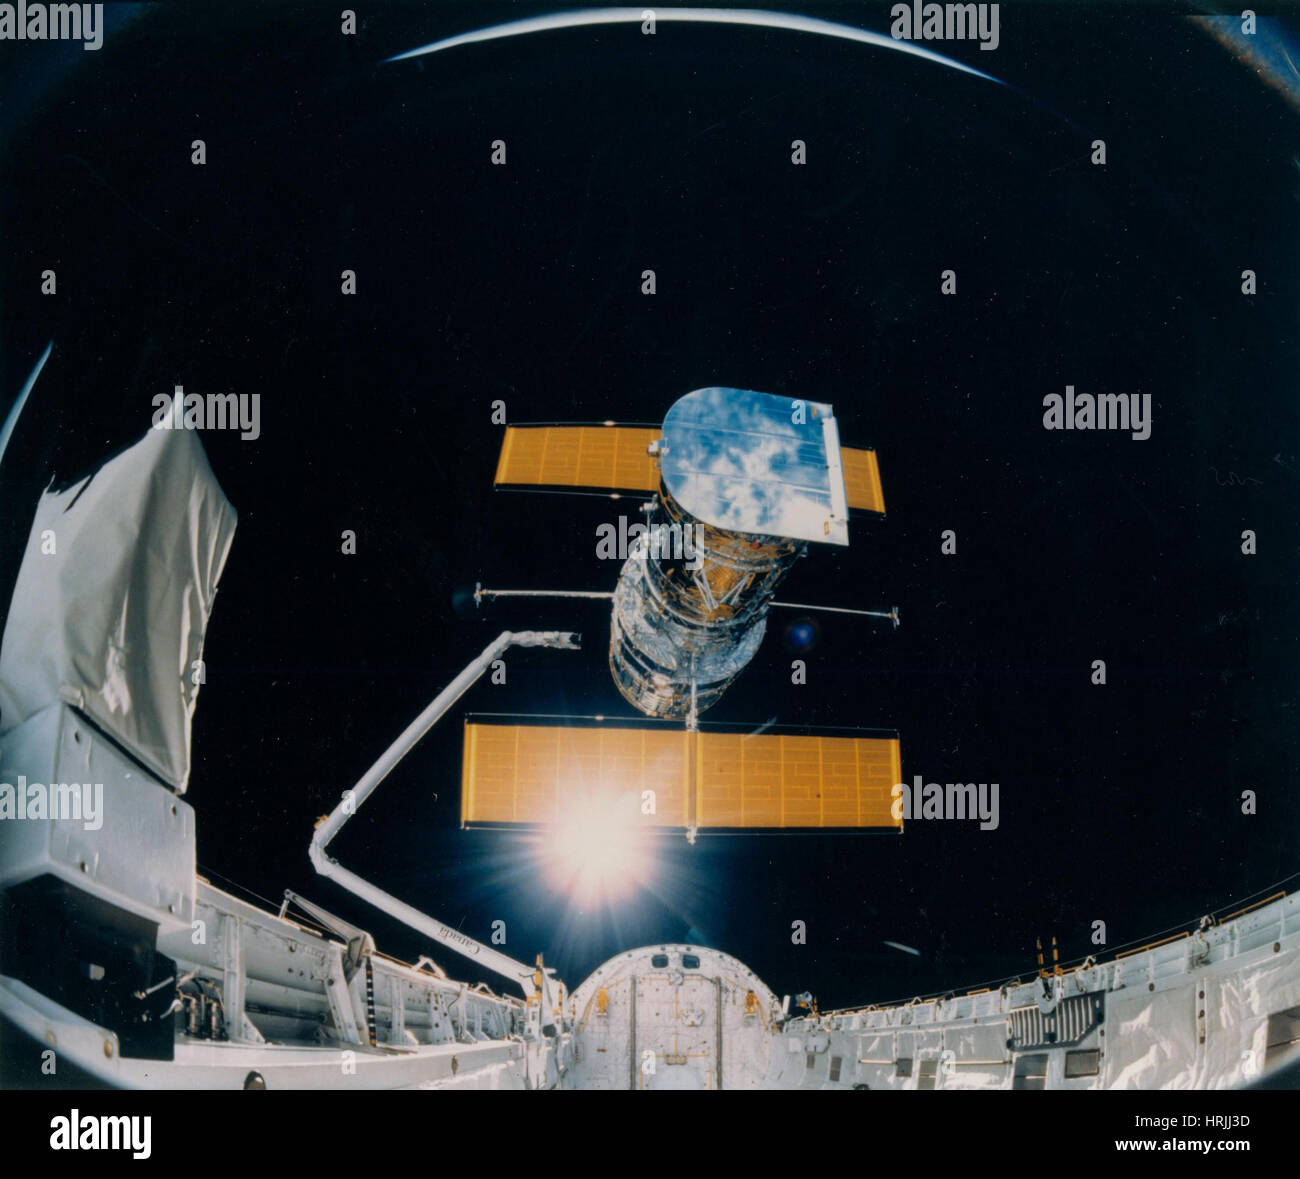 STS-31, Deployment of Hubble Space Telescope, 1990 - Stock Image